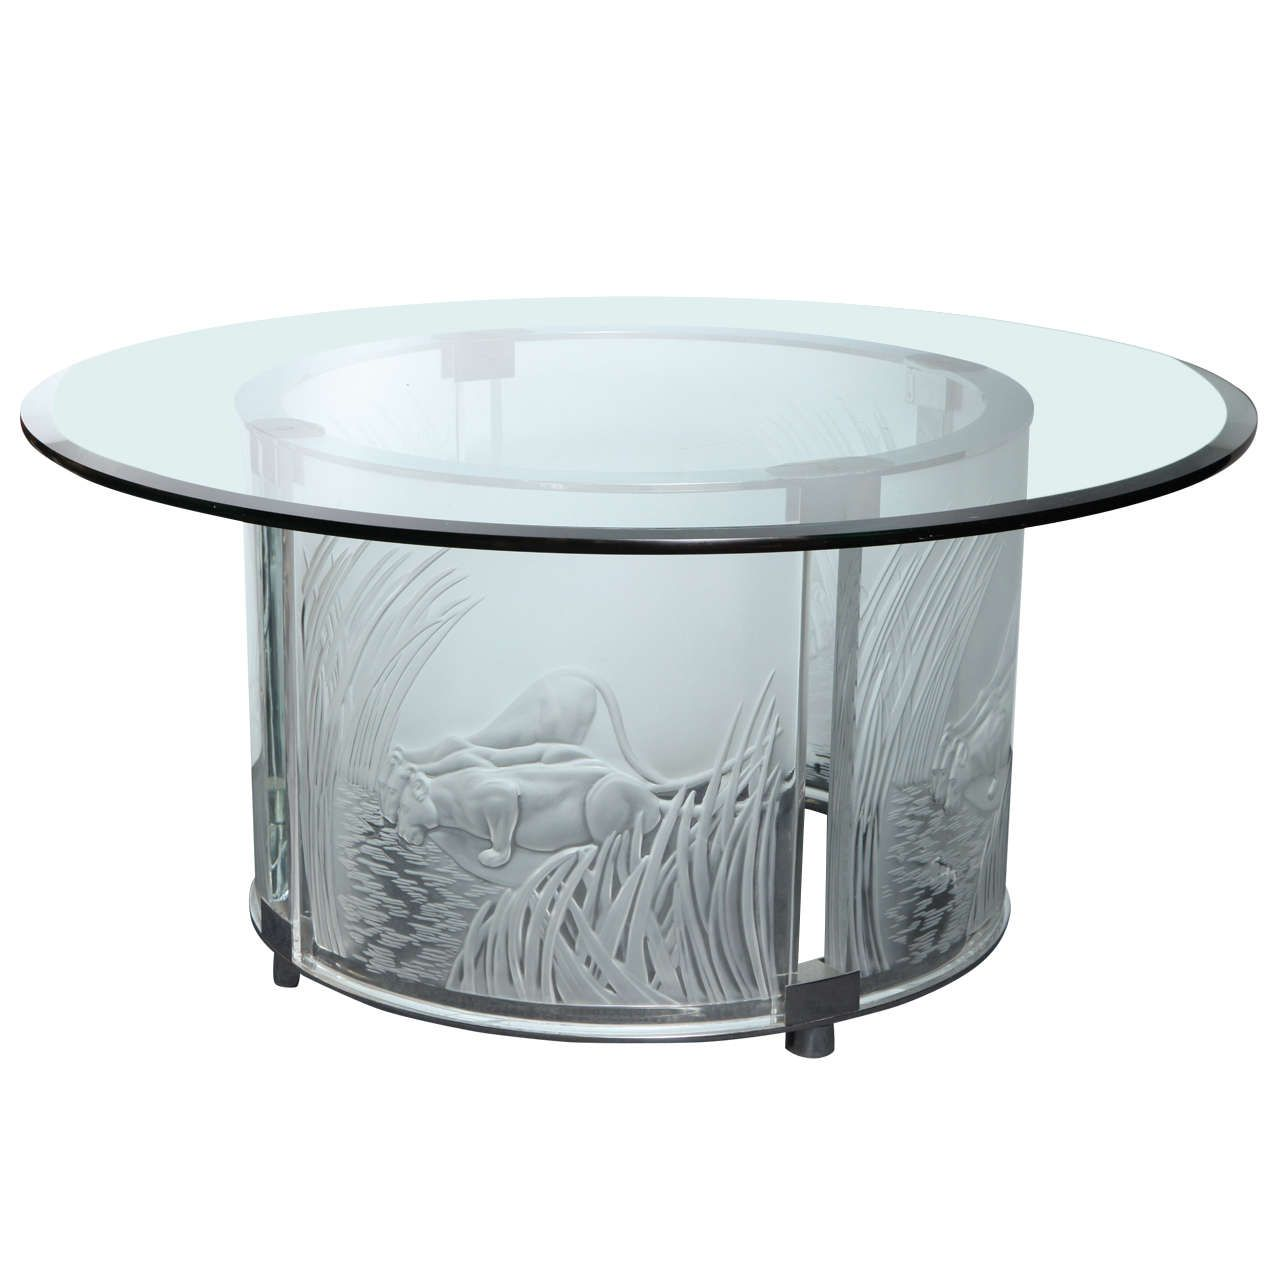 Deco Chrome Coffee Table: Lalique, Art Deco Style Three Lioness Glass And Chrome